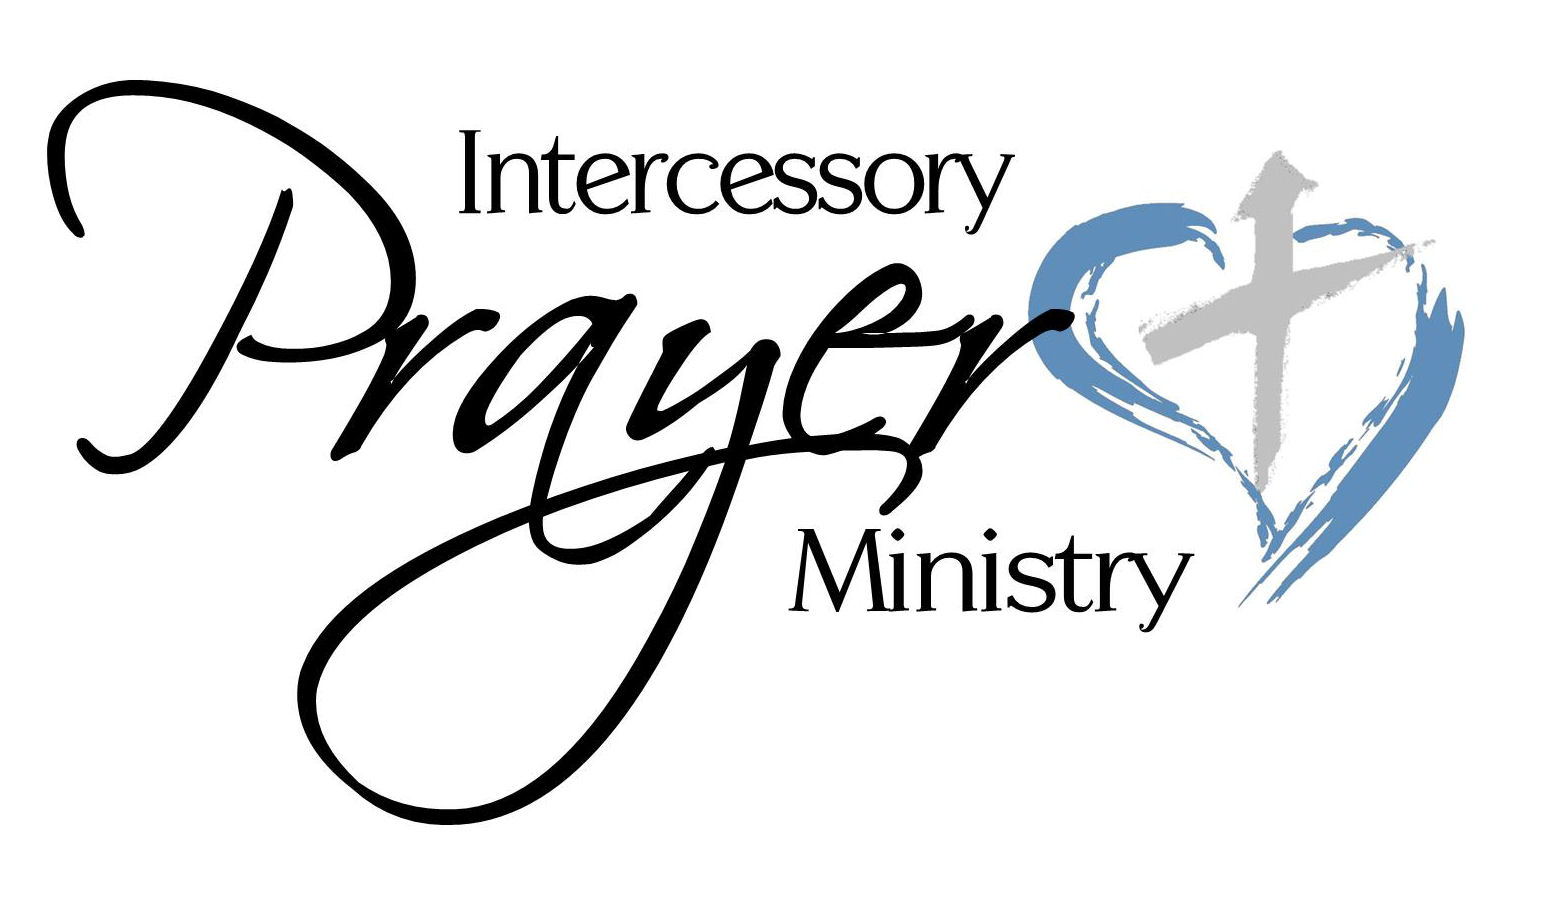 Prayer Ministry Free Prayer Ministry Cliparts Download Free Clip Art Free Clip